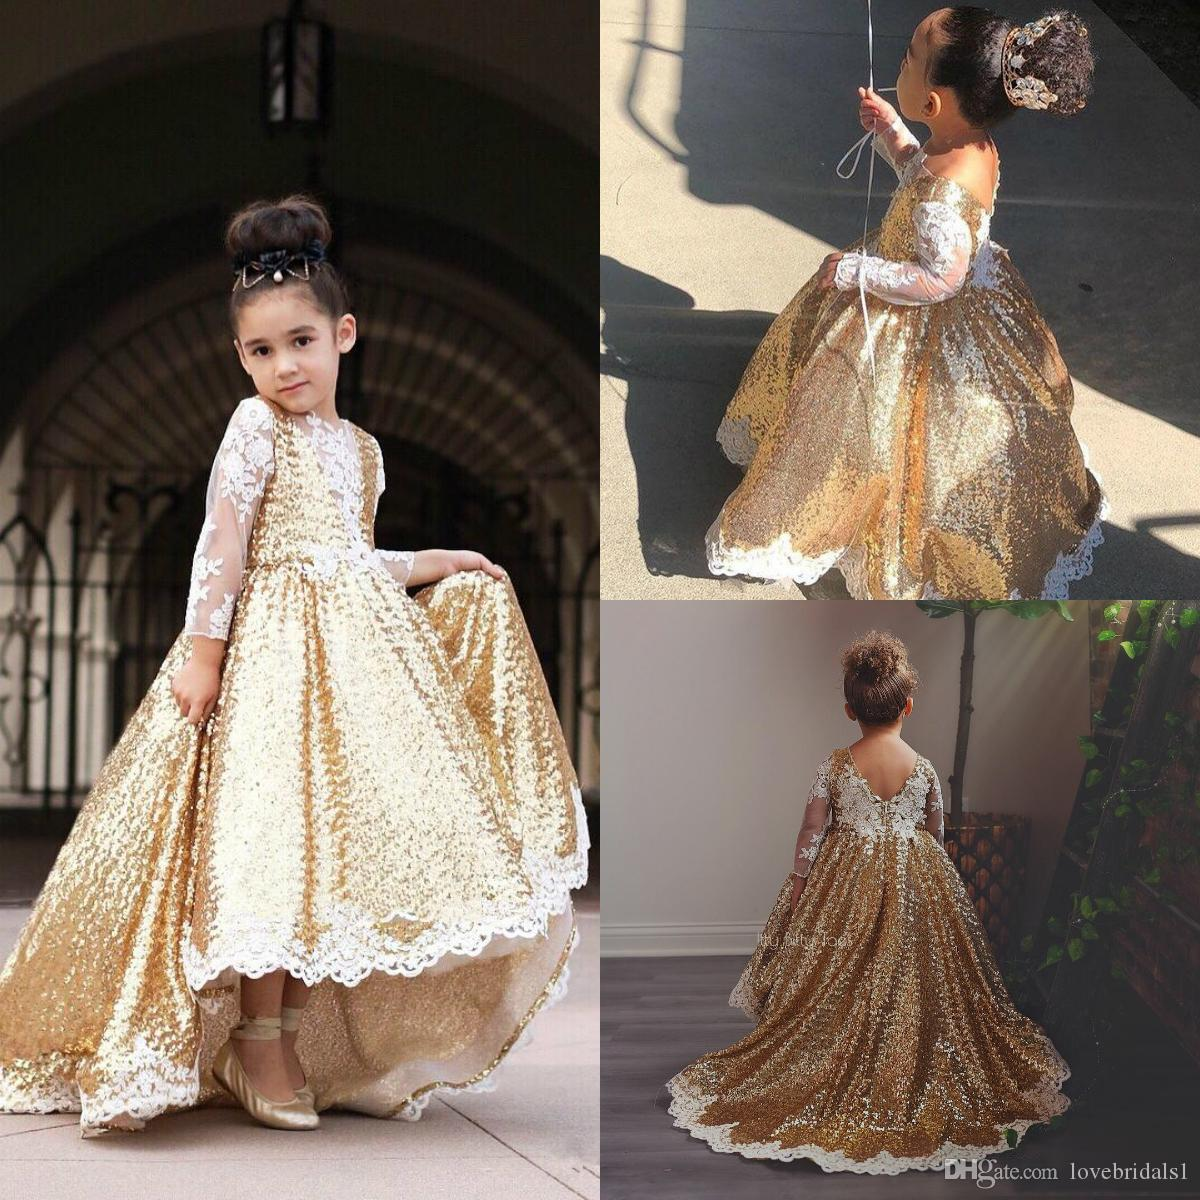 6764452d0ce9 Sparkling Gold Sequined High Low Princess Flowers Girl Dresses With Lace  Long Sleeve Girls Pageant Gowns For Wedding Prom Party Dress Custo Girls  Easter ...